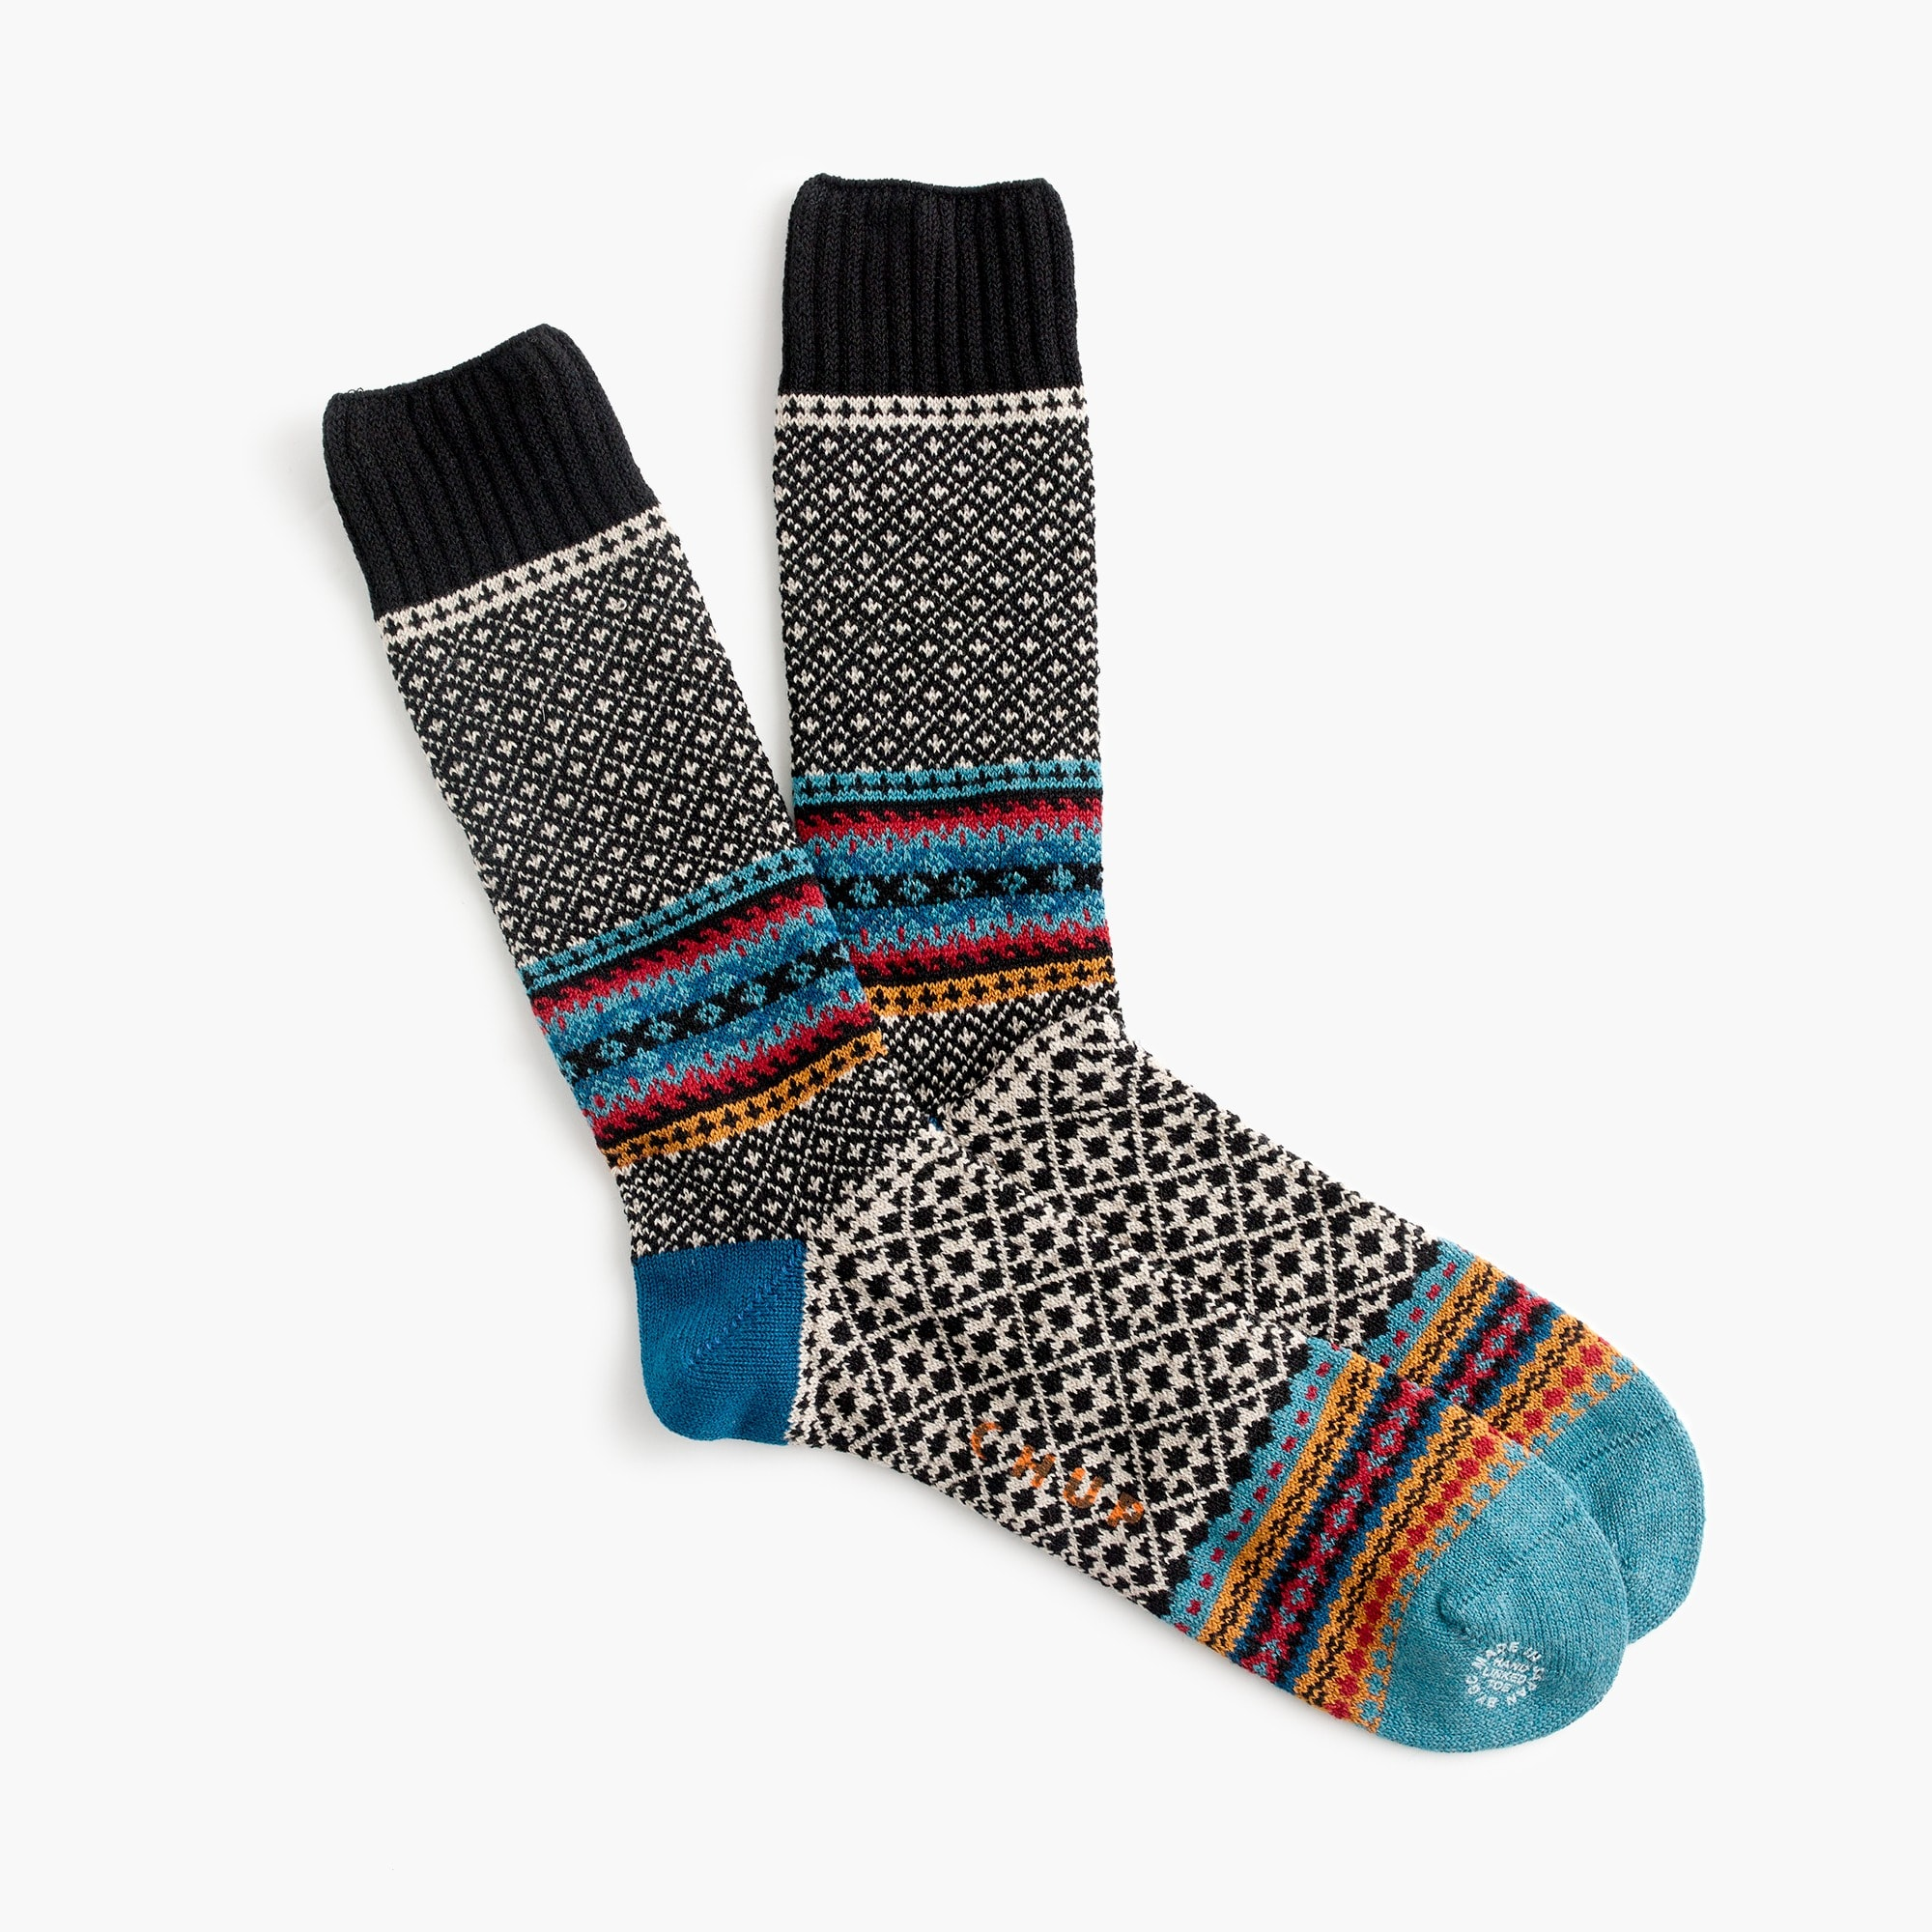 Chup™ multi-pattern socks